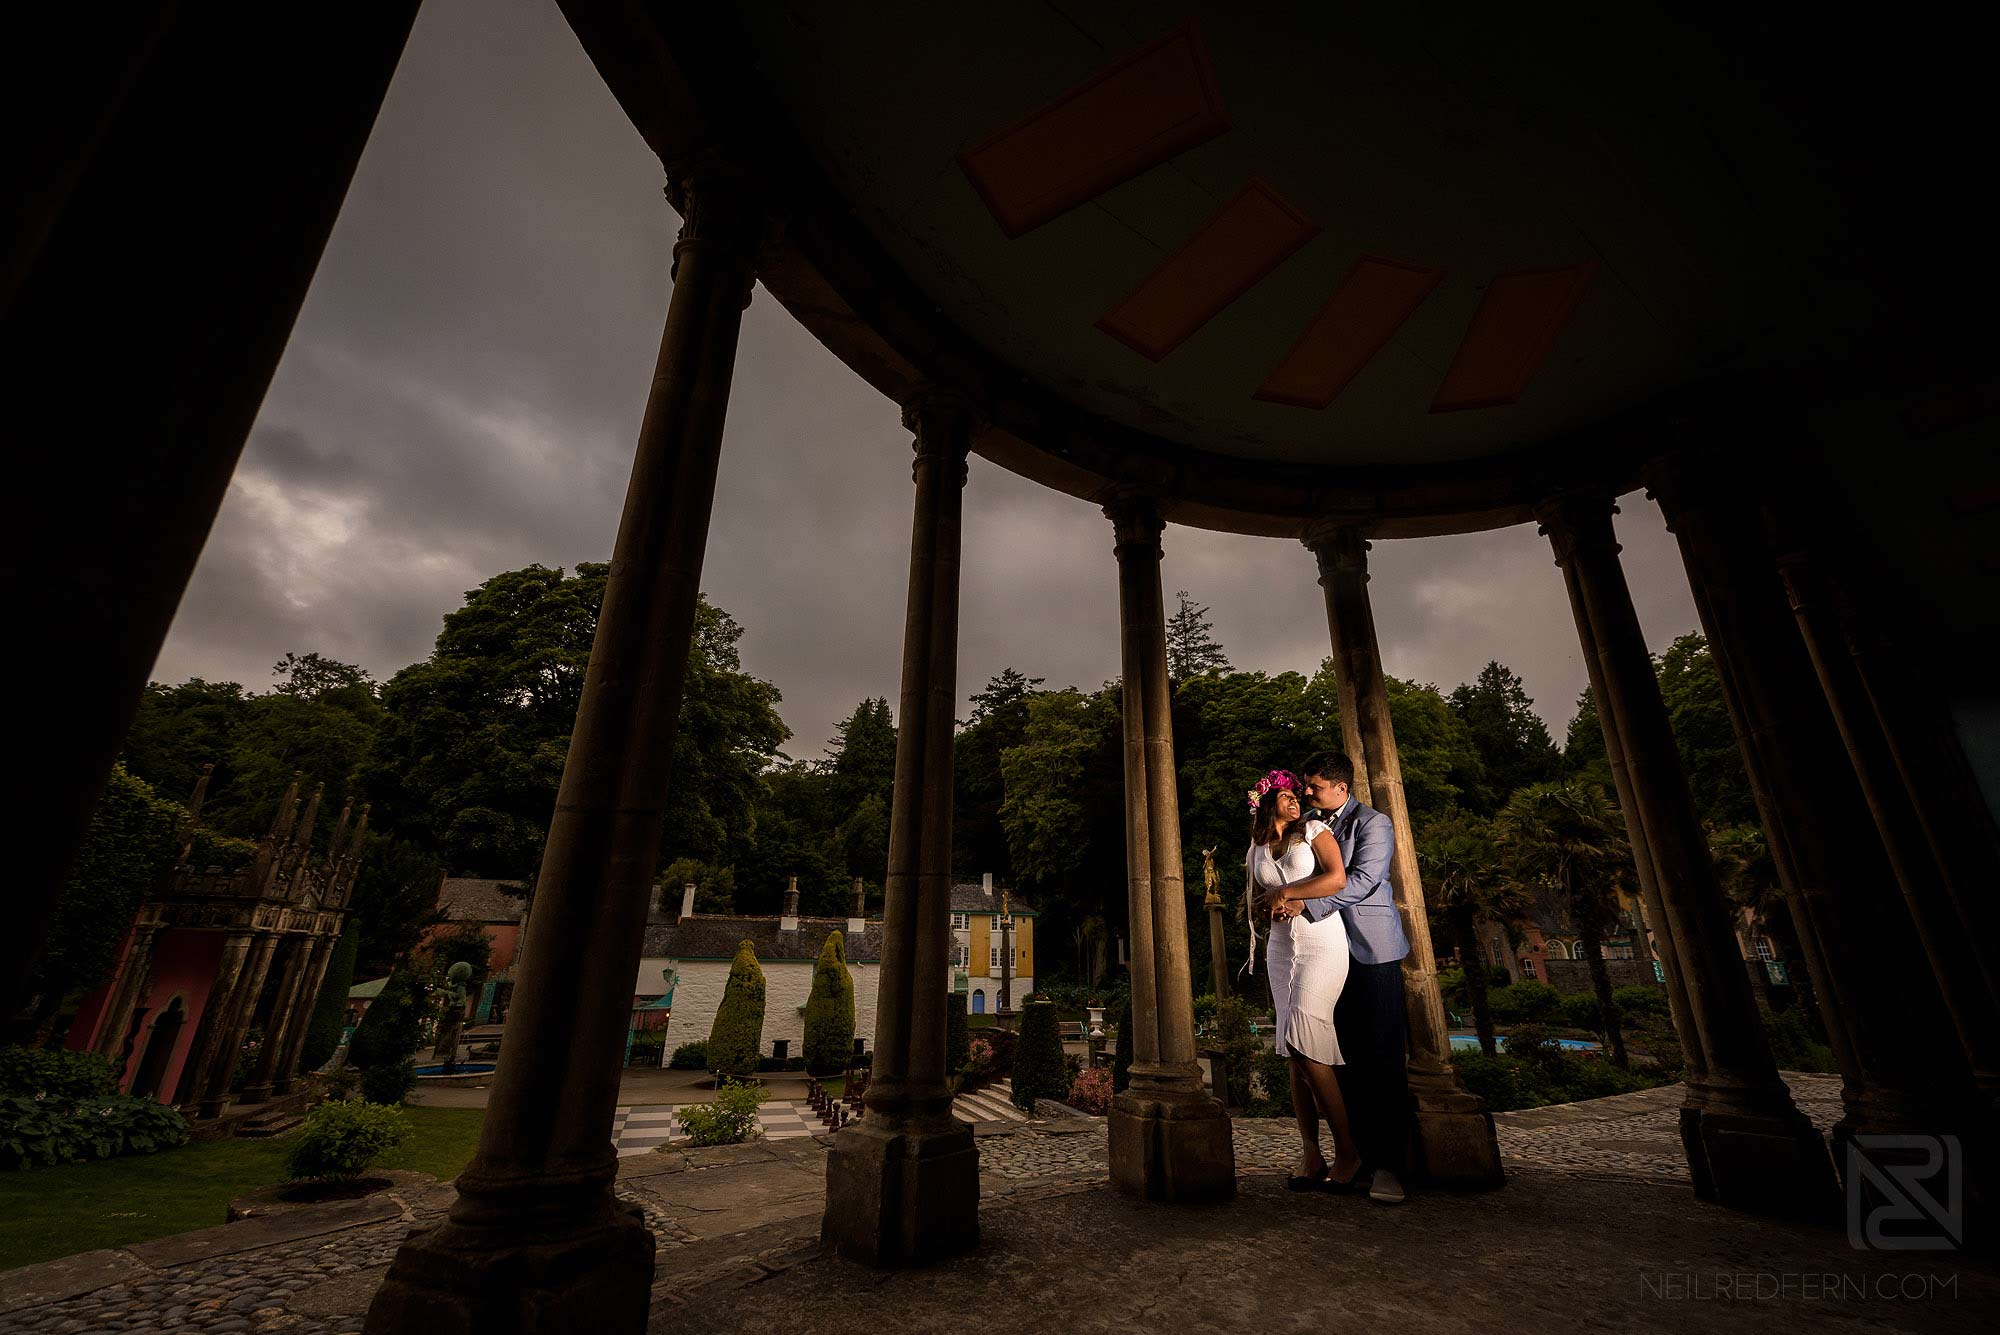 creative off camera flash portrait of couple on engagement shoot